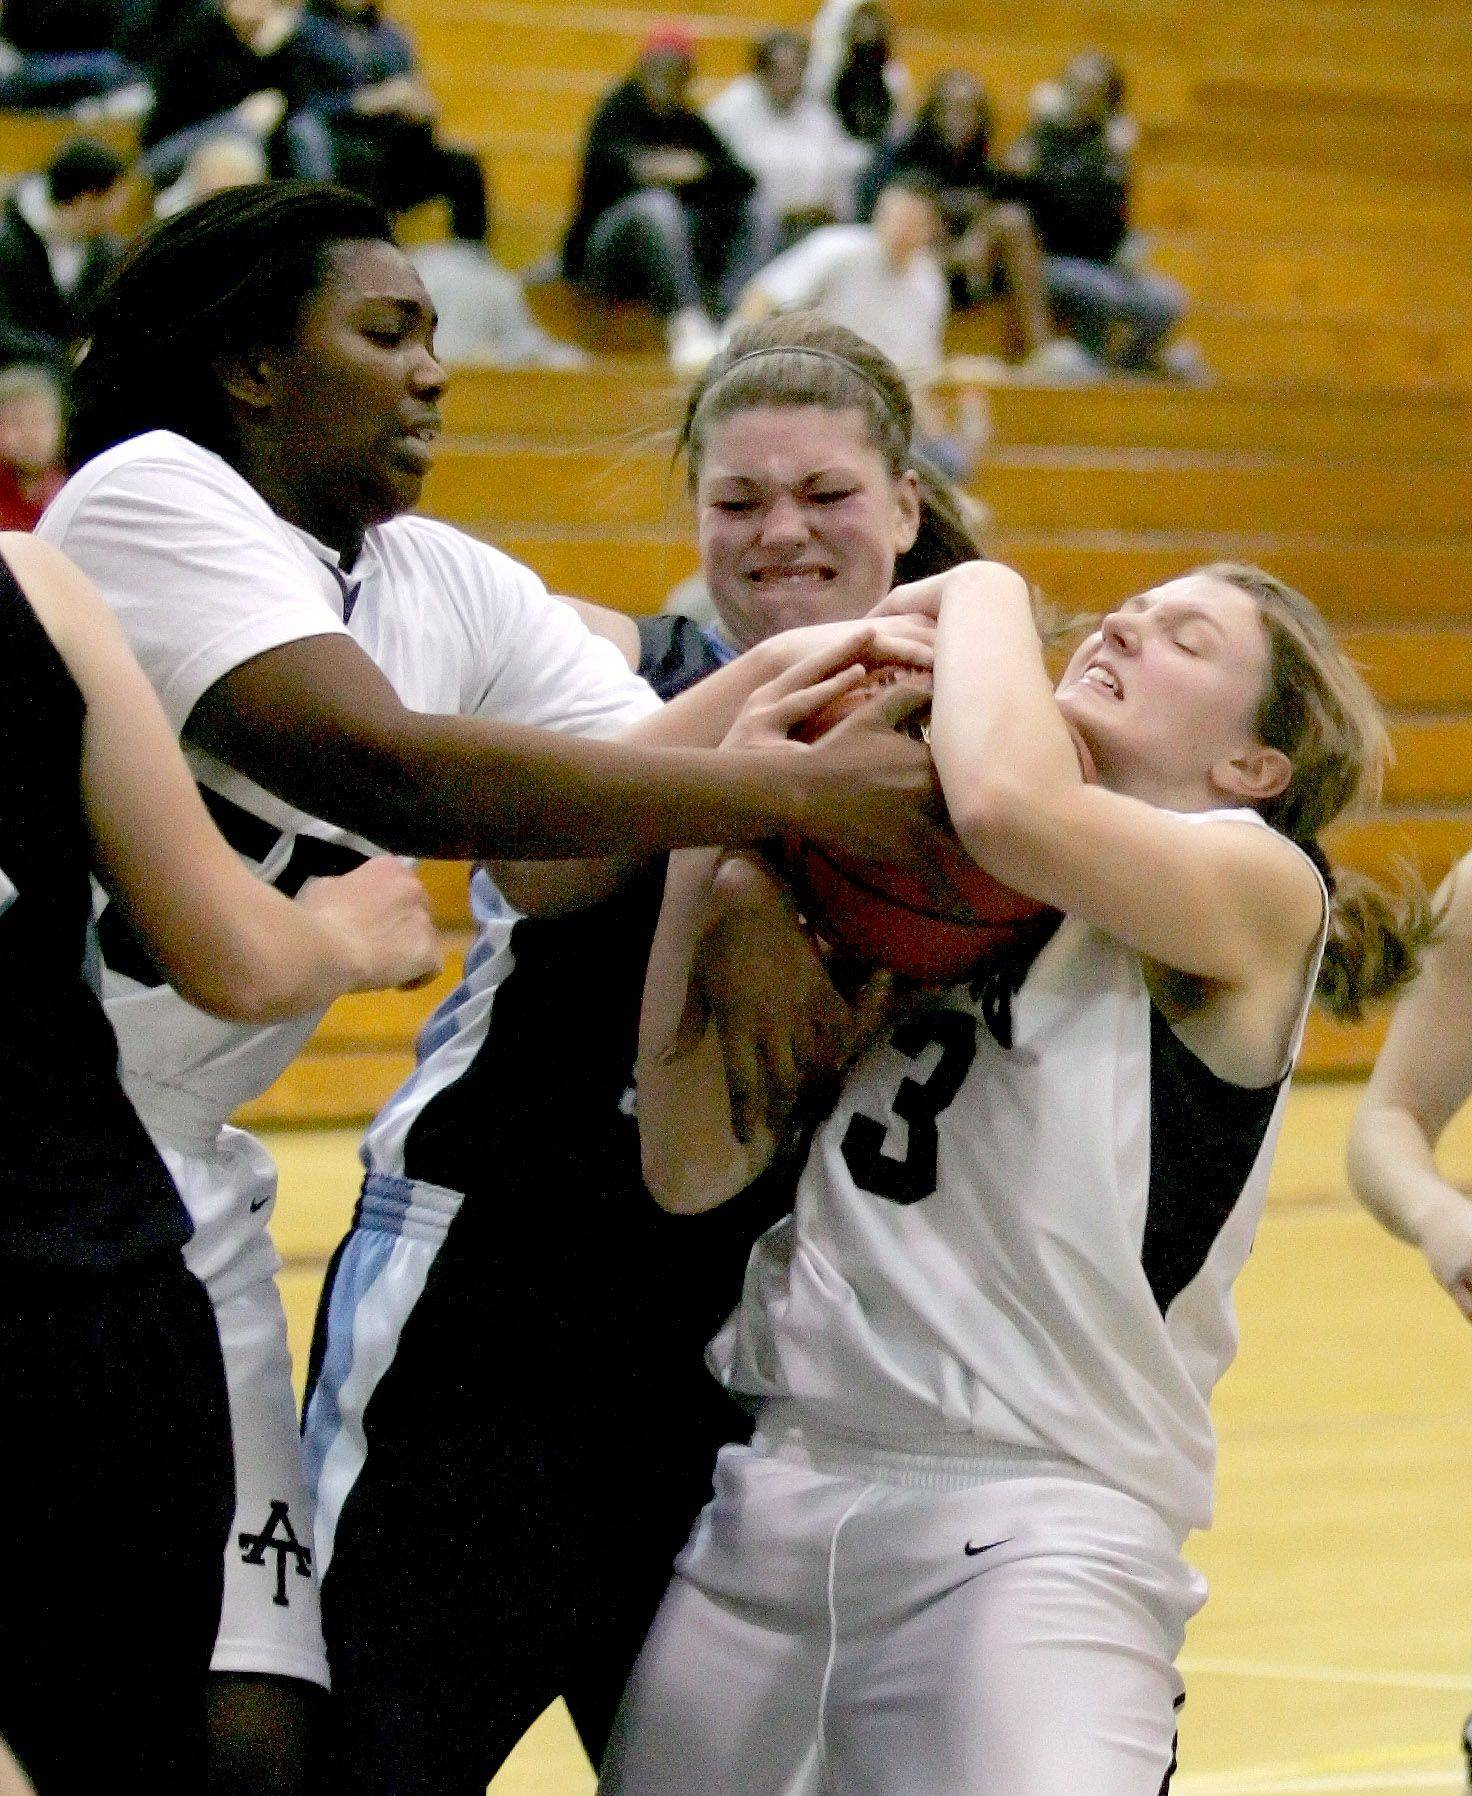 MeShaundra Donald, left, and Jamie Smolinski, right, of Addison Trail fight for the ball with Kirsten Zemke of Downers Grove South, center.